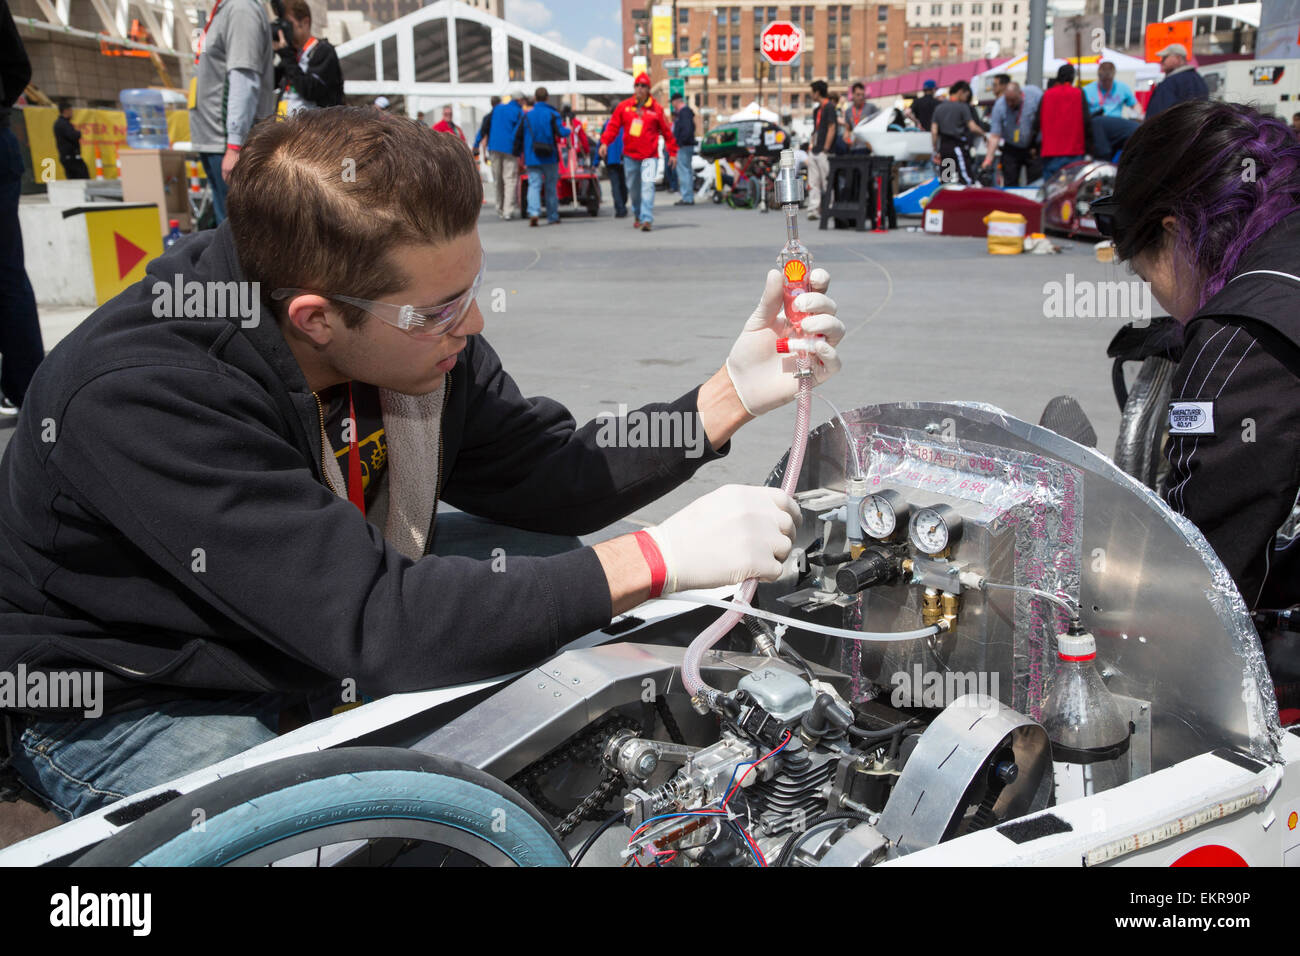 Detroit, Michigan - A member of the University of British Columbia team checks his car's fuel tank in the Shell - Stock Image